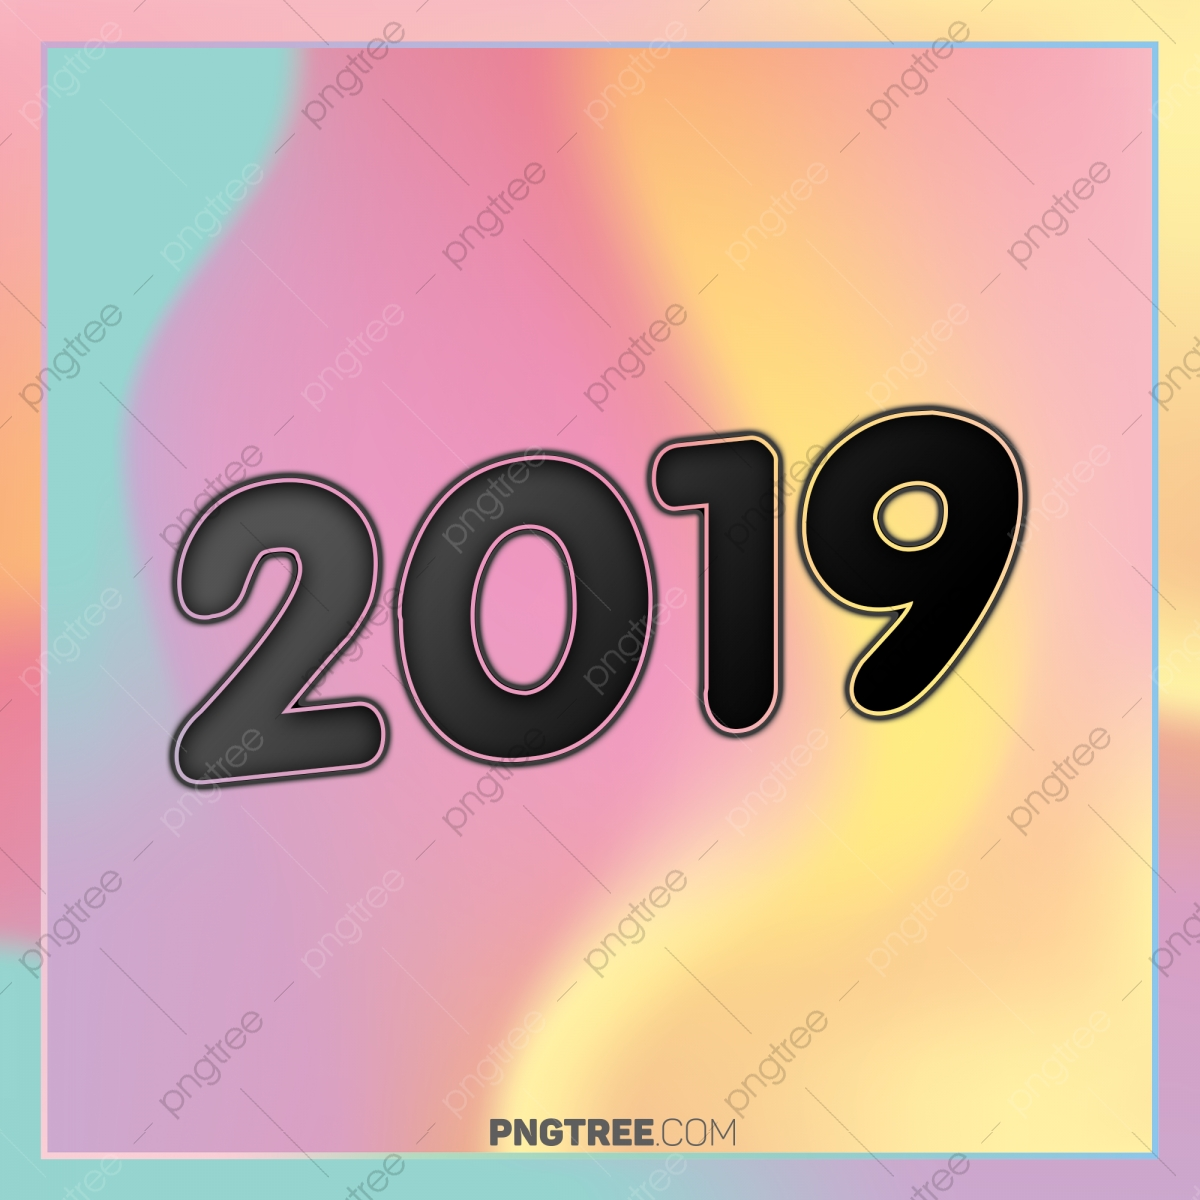 Hologram color 2019 happy new year text newyear happy newyear 2019 png transparent clipart - New years colors 2019 ...